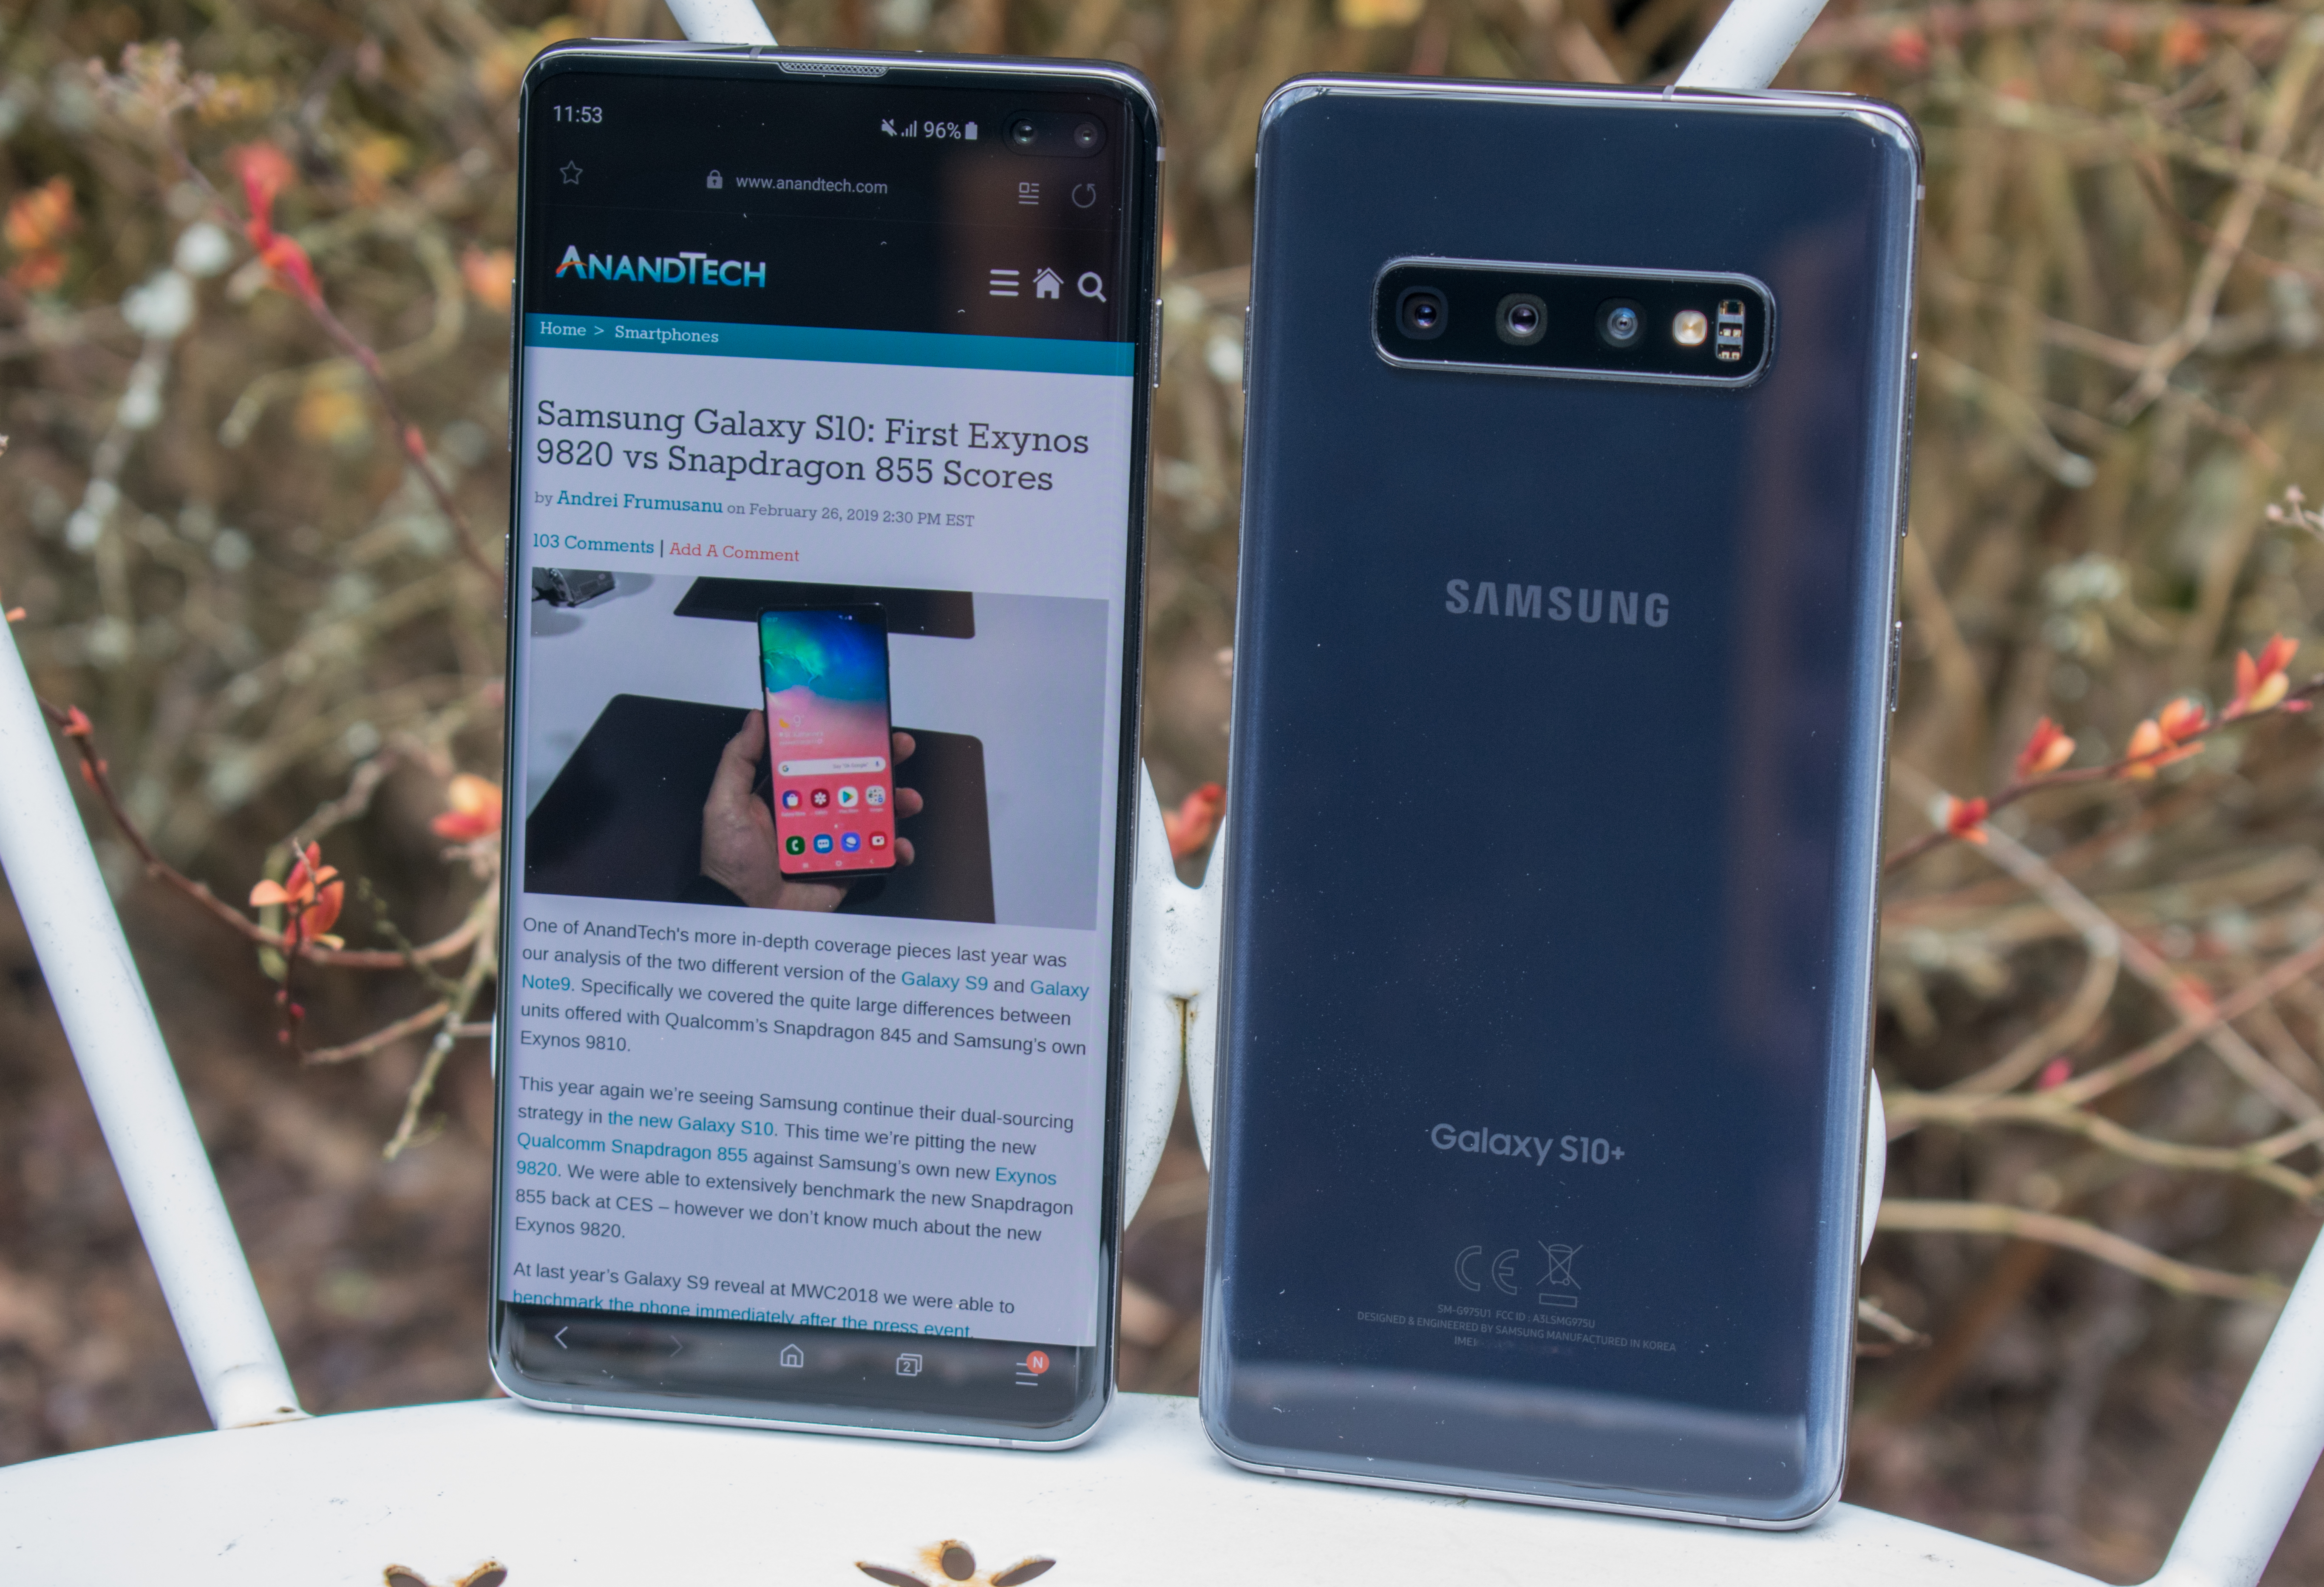 Conclusion & End Remarks - The Samsung Galaxy S10+